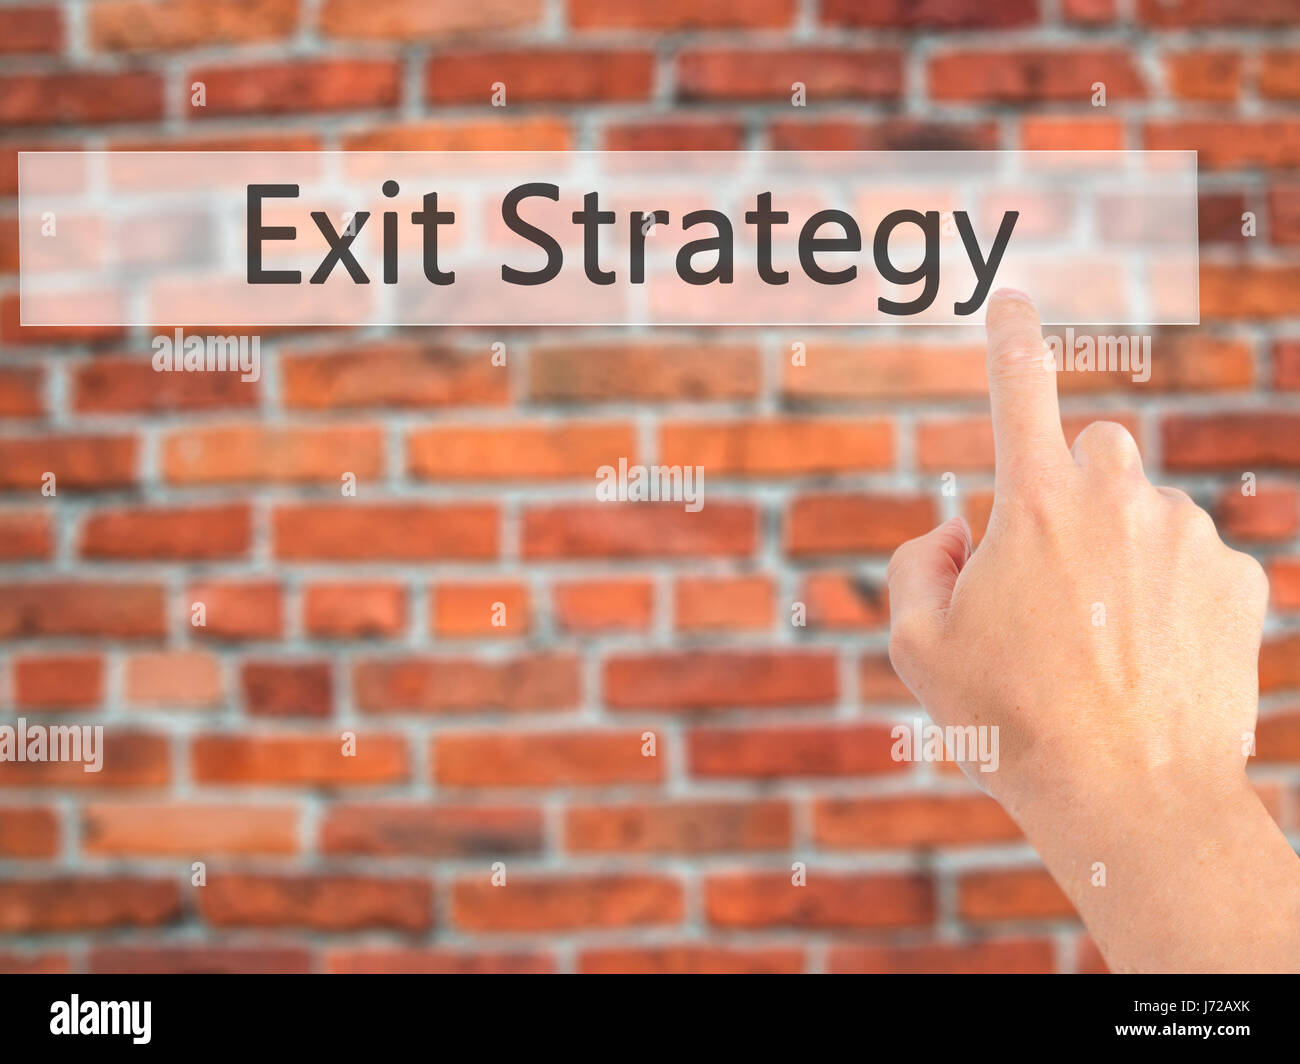 Exit Strategy - Hand pressing a button on blurred background concept . Business, technology, internet concept. Stock - Stock Image